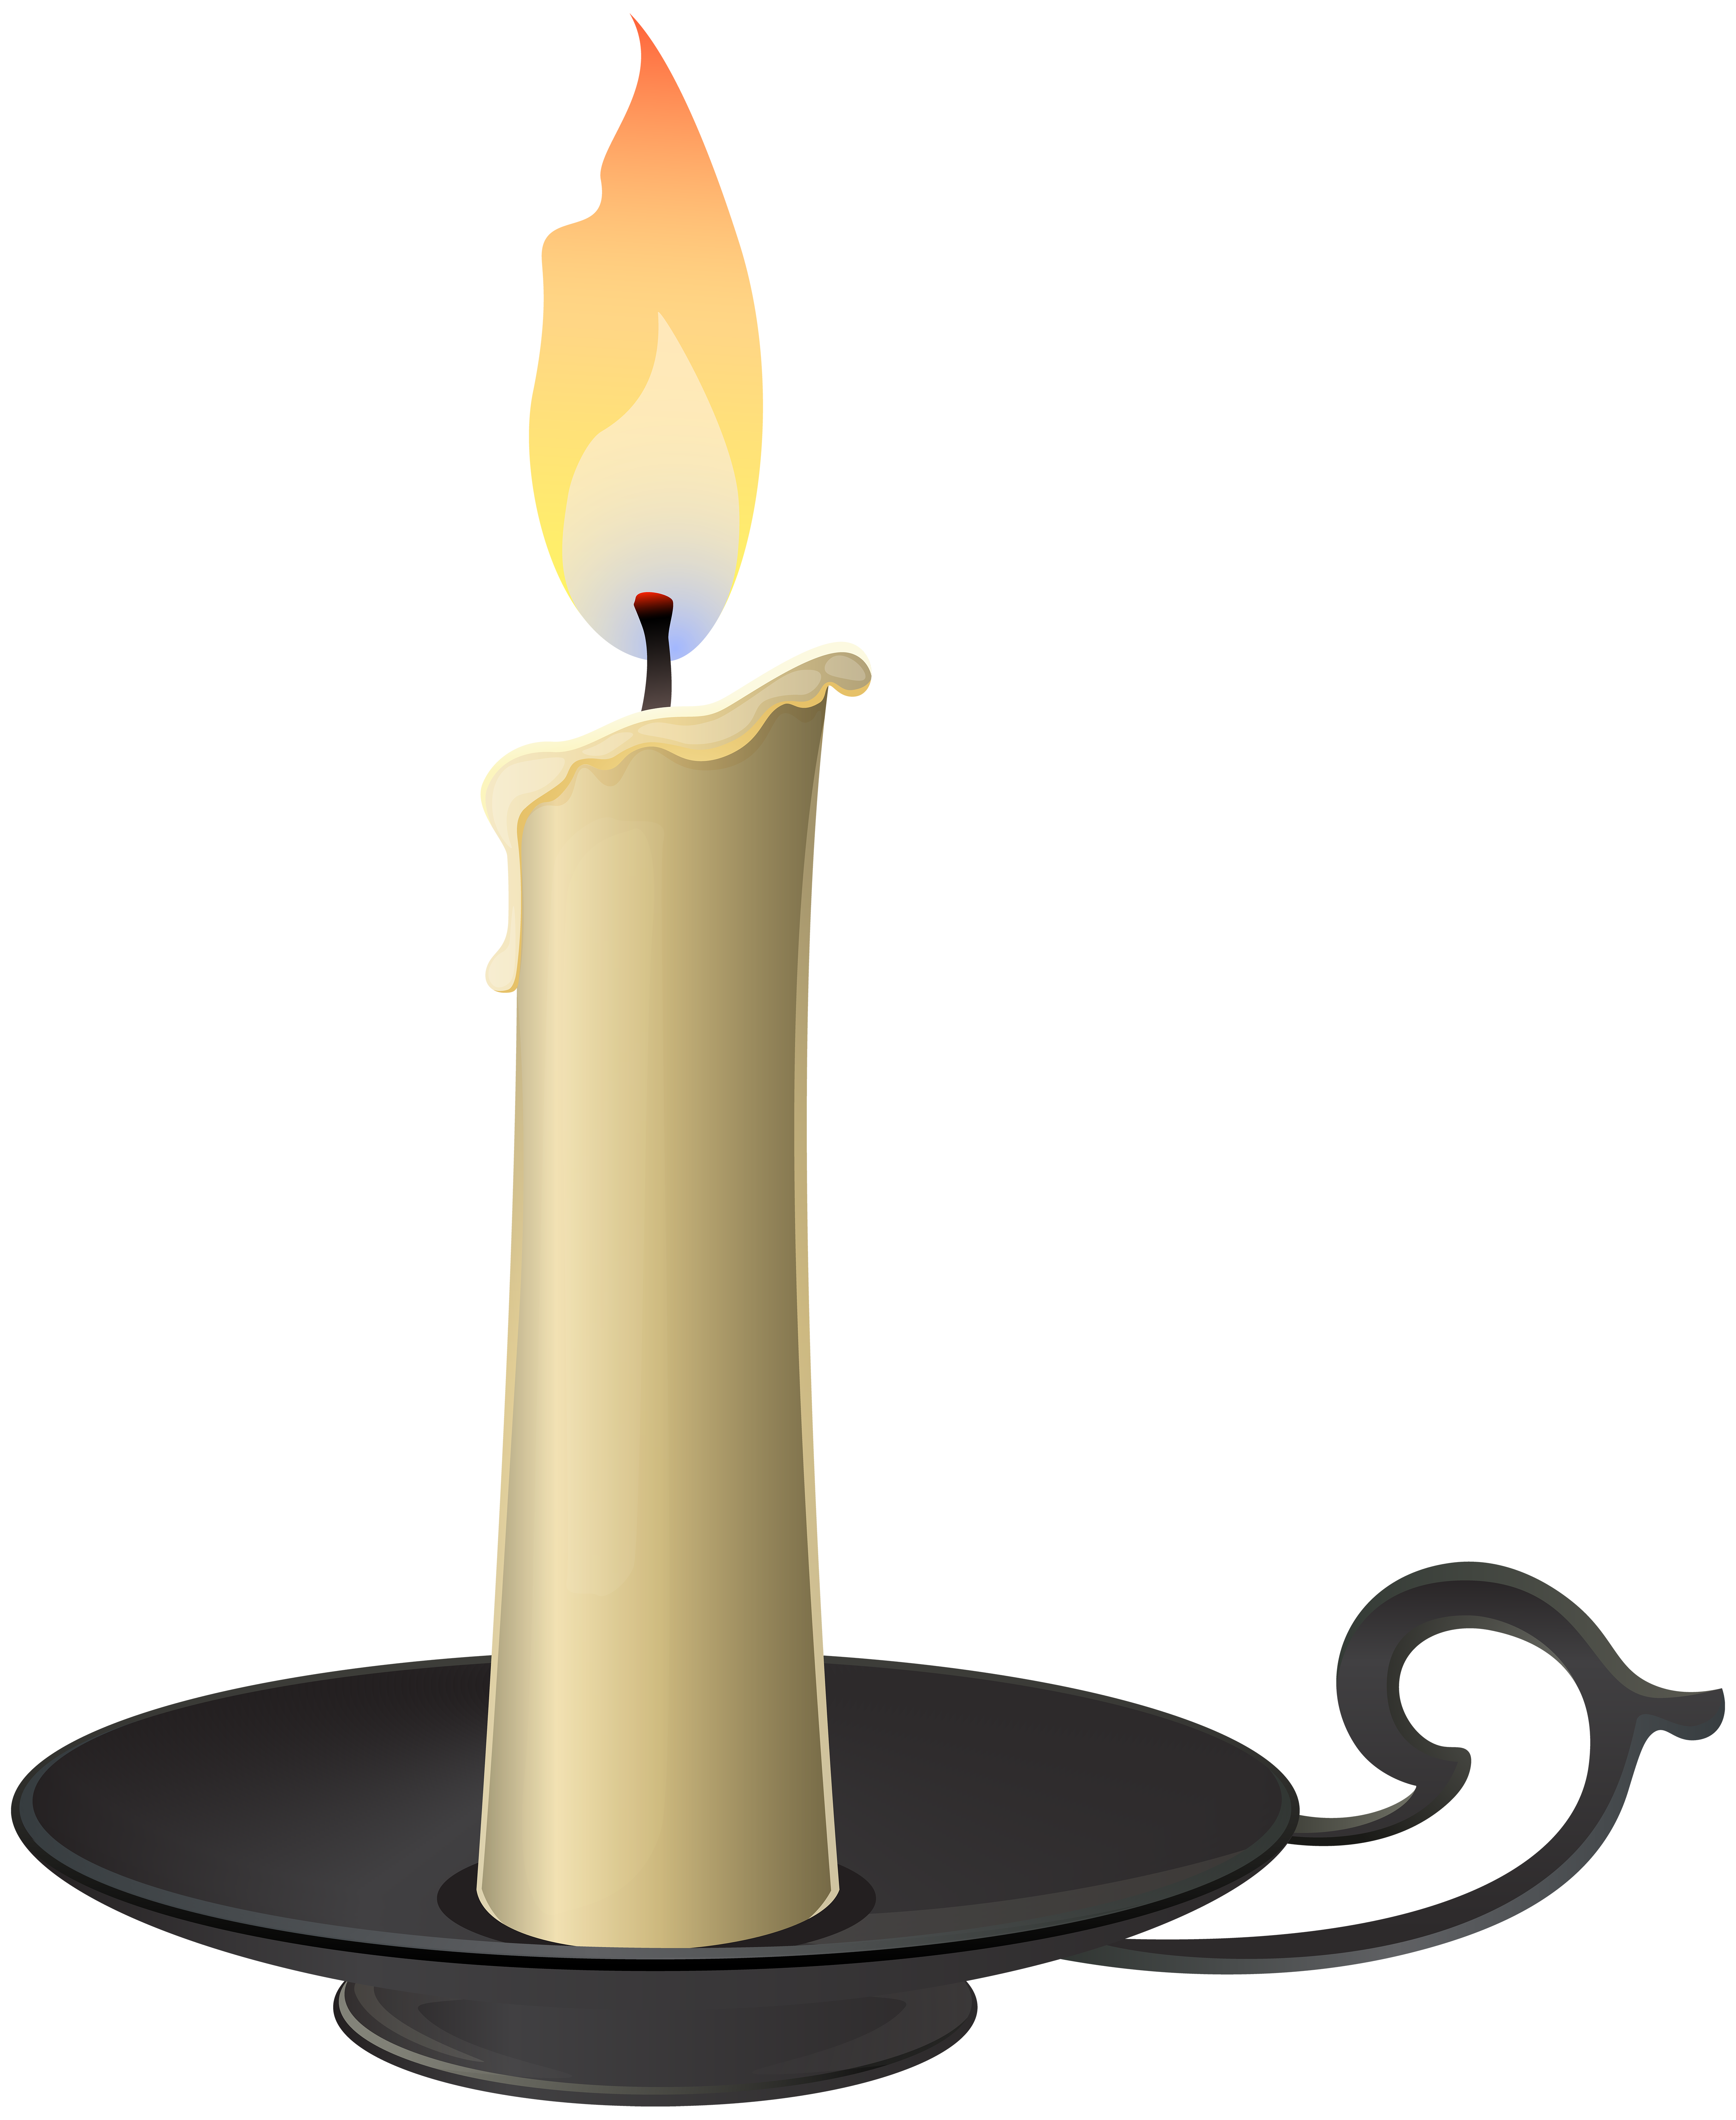 Candleholder clipart picture black and white library Candle Holder Clipart | Free download best Candle Holder Clipart on ... picture black and white library